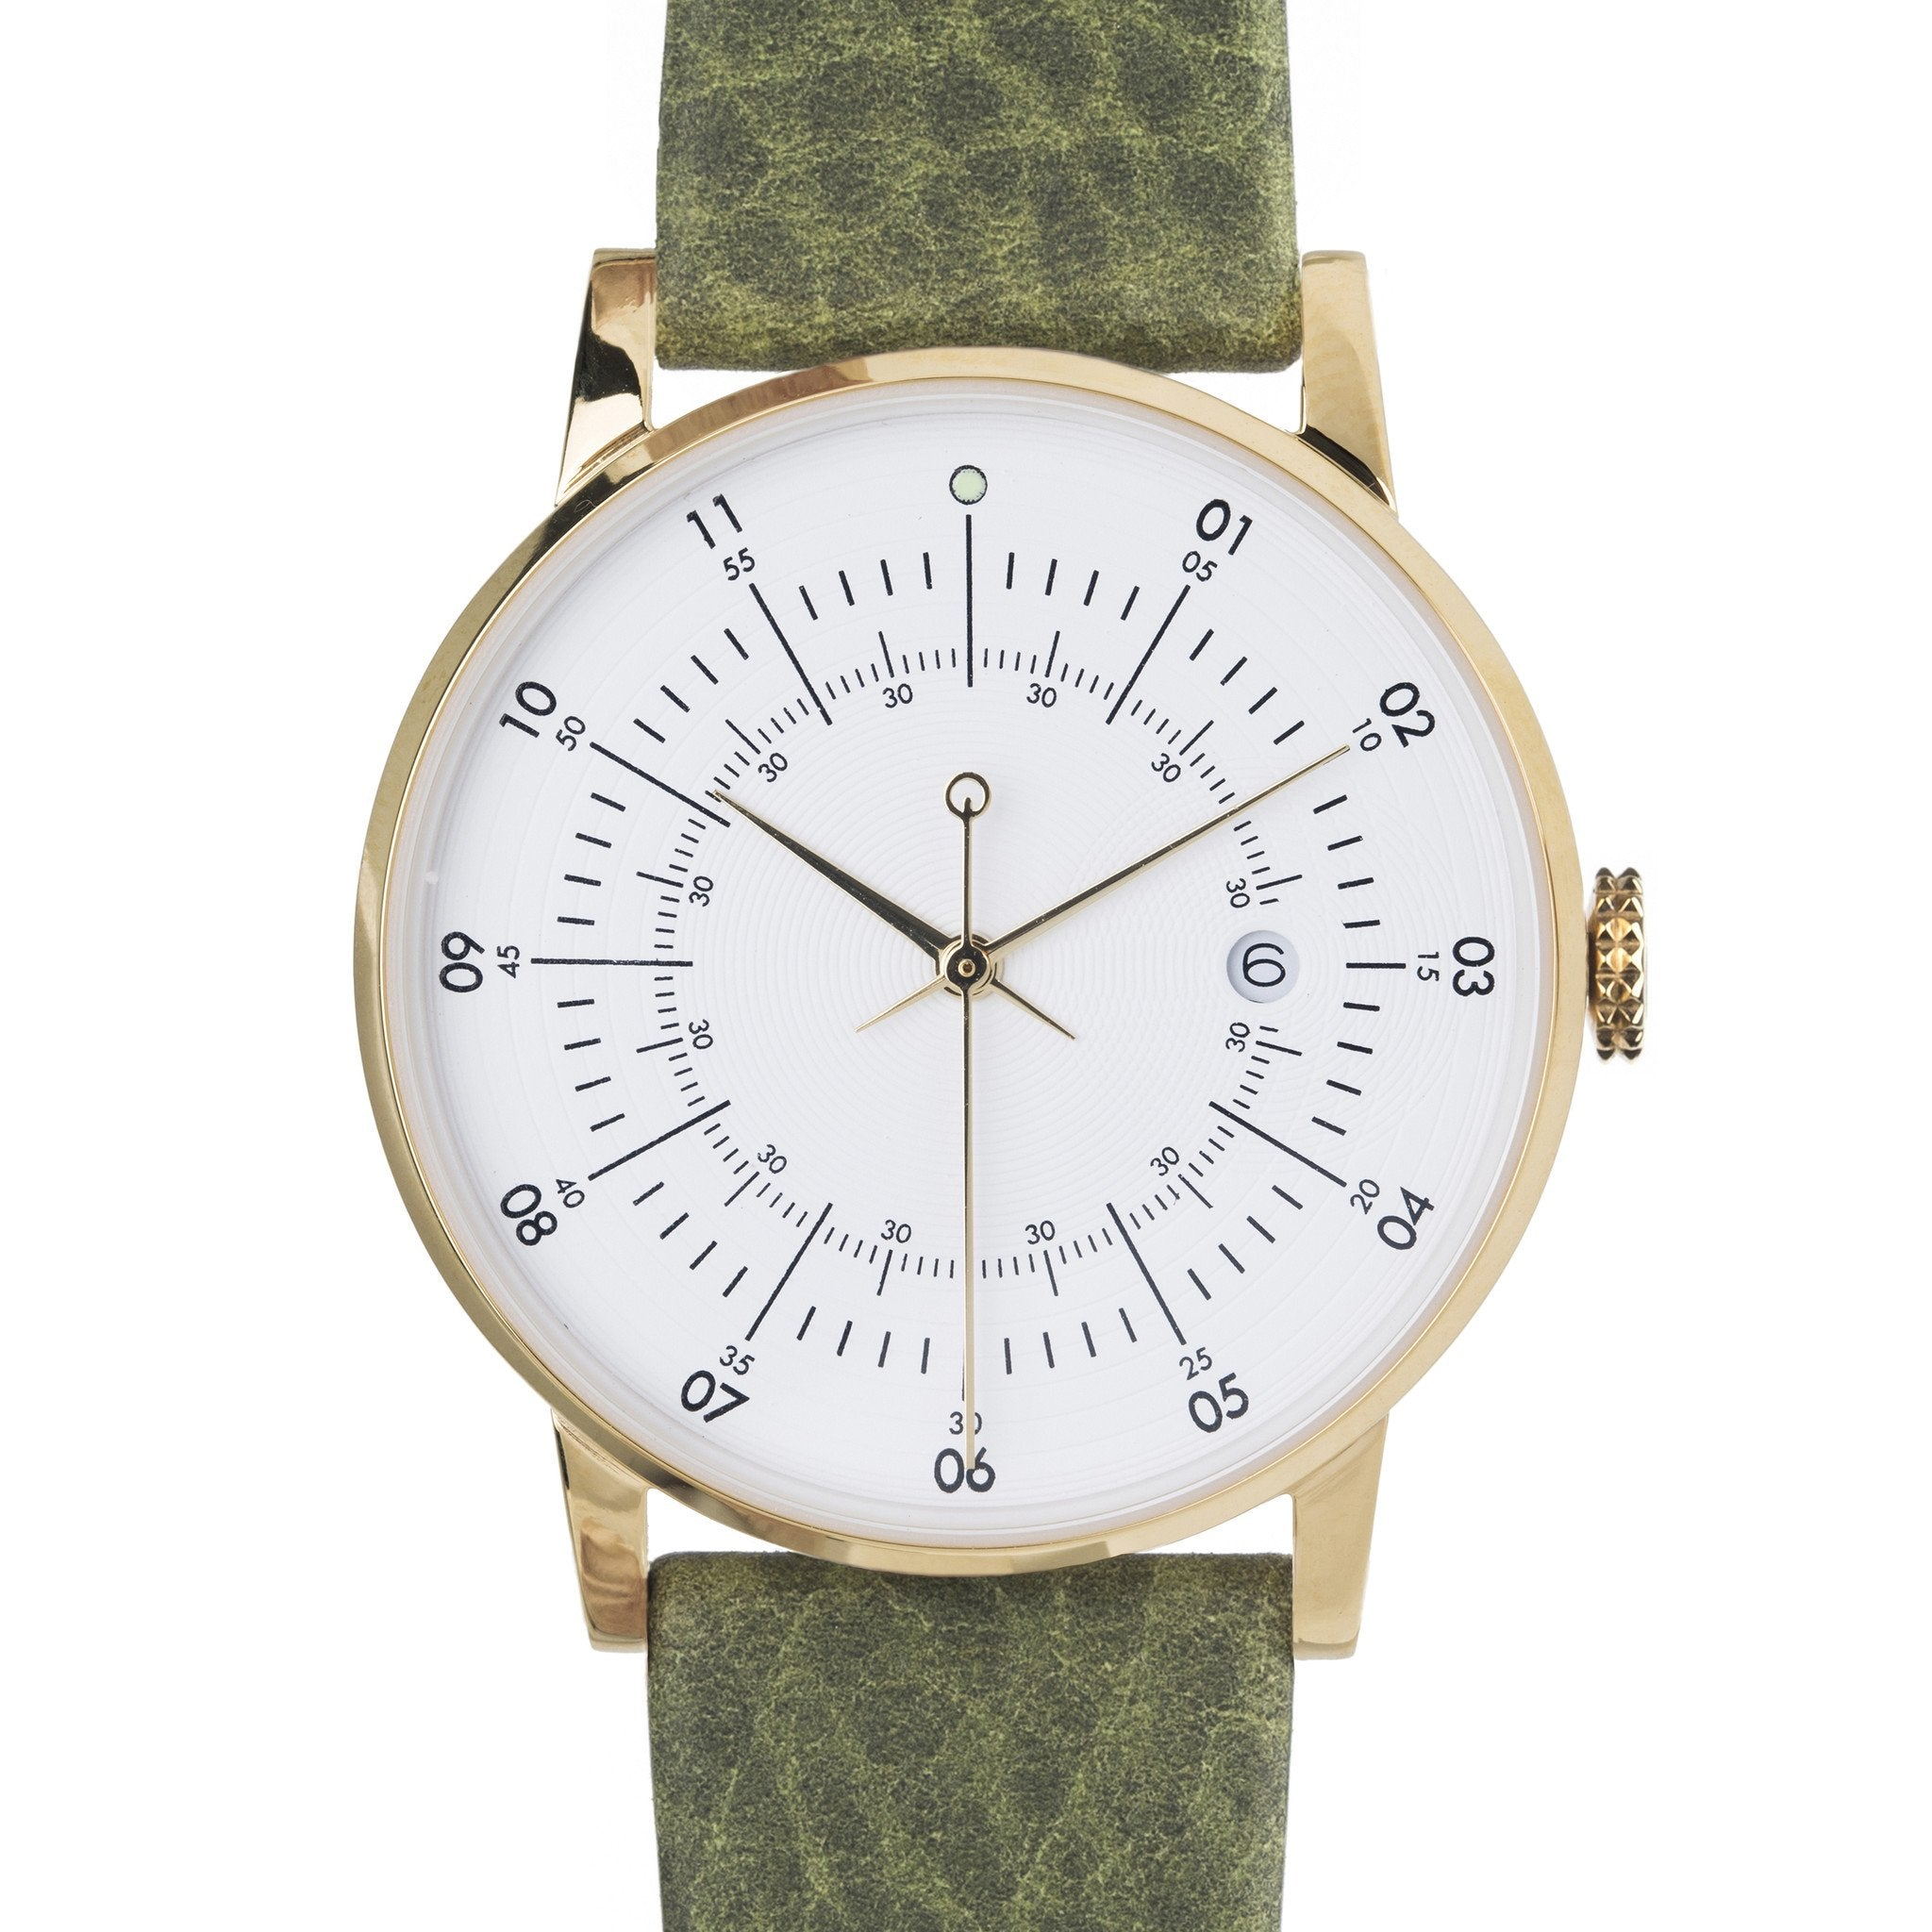 SQ38 Plano watch, PS-07